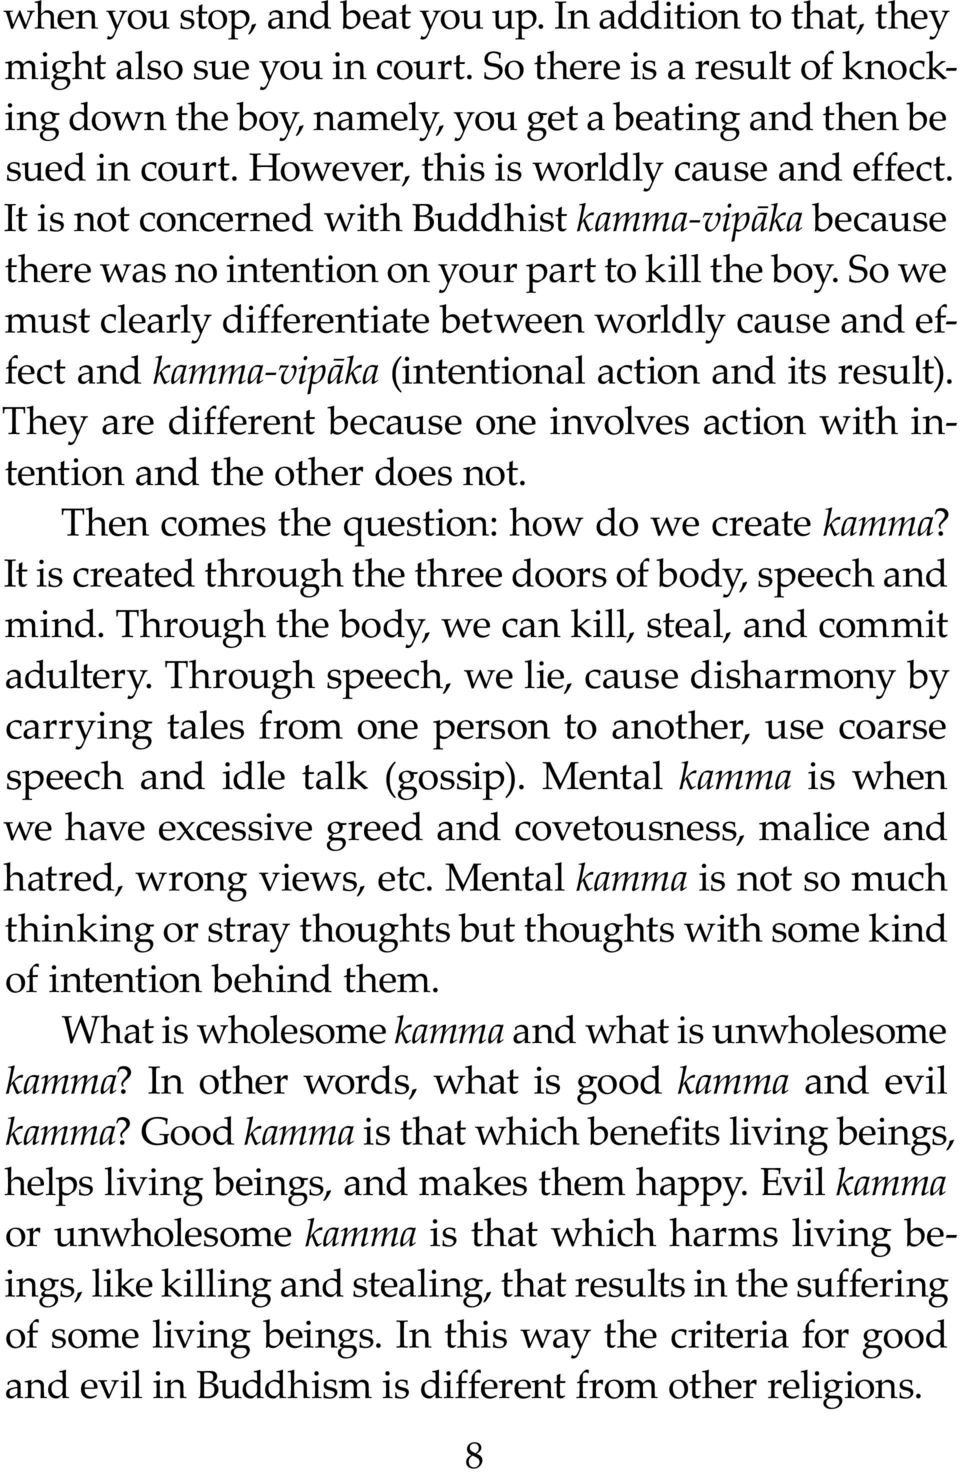 So we must clearly differentiate between worldly cause and effect and kamma-vipāka (intentional action and its result).